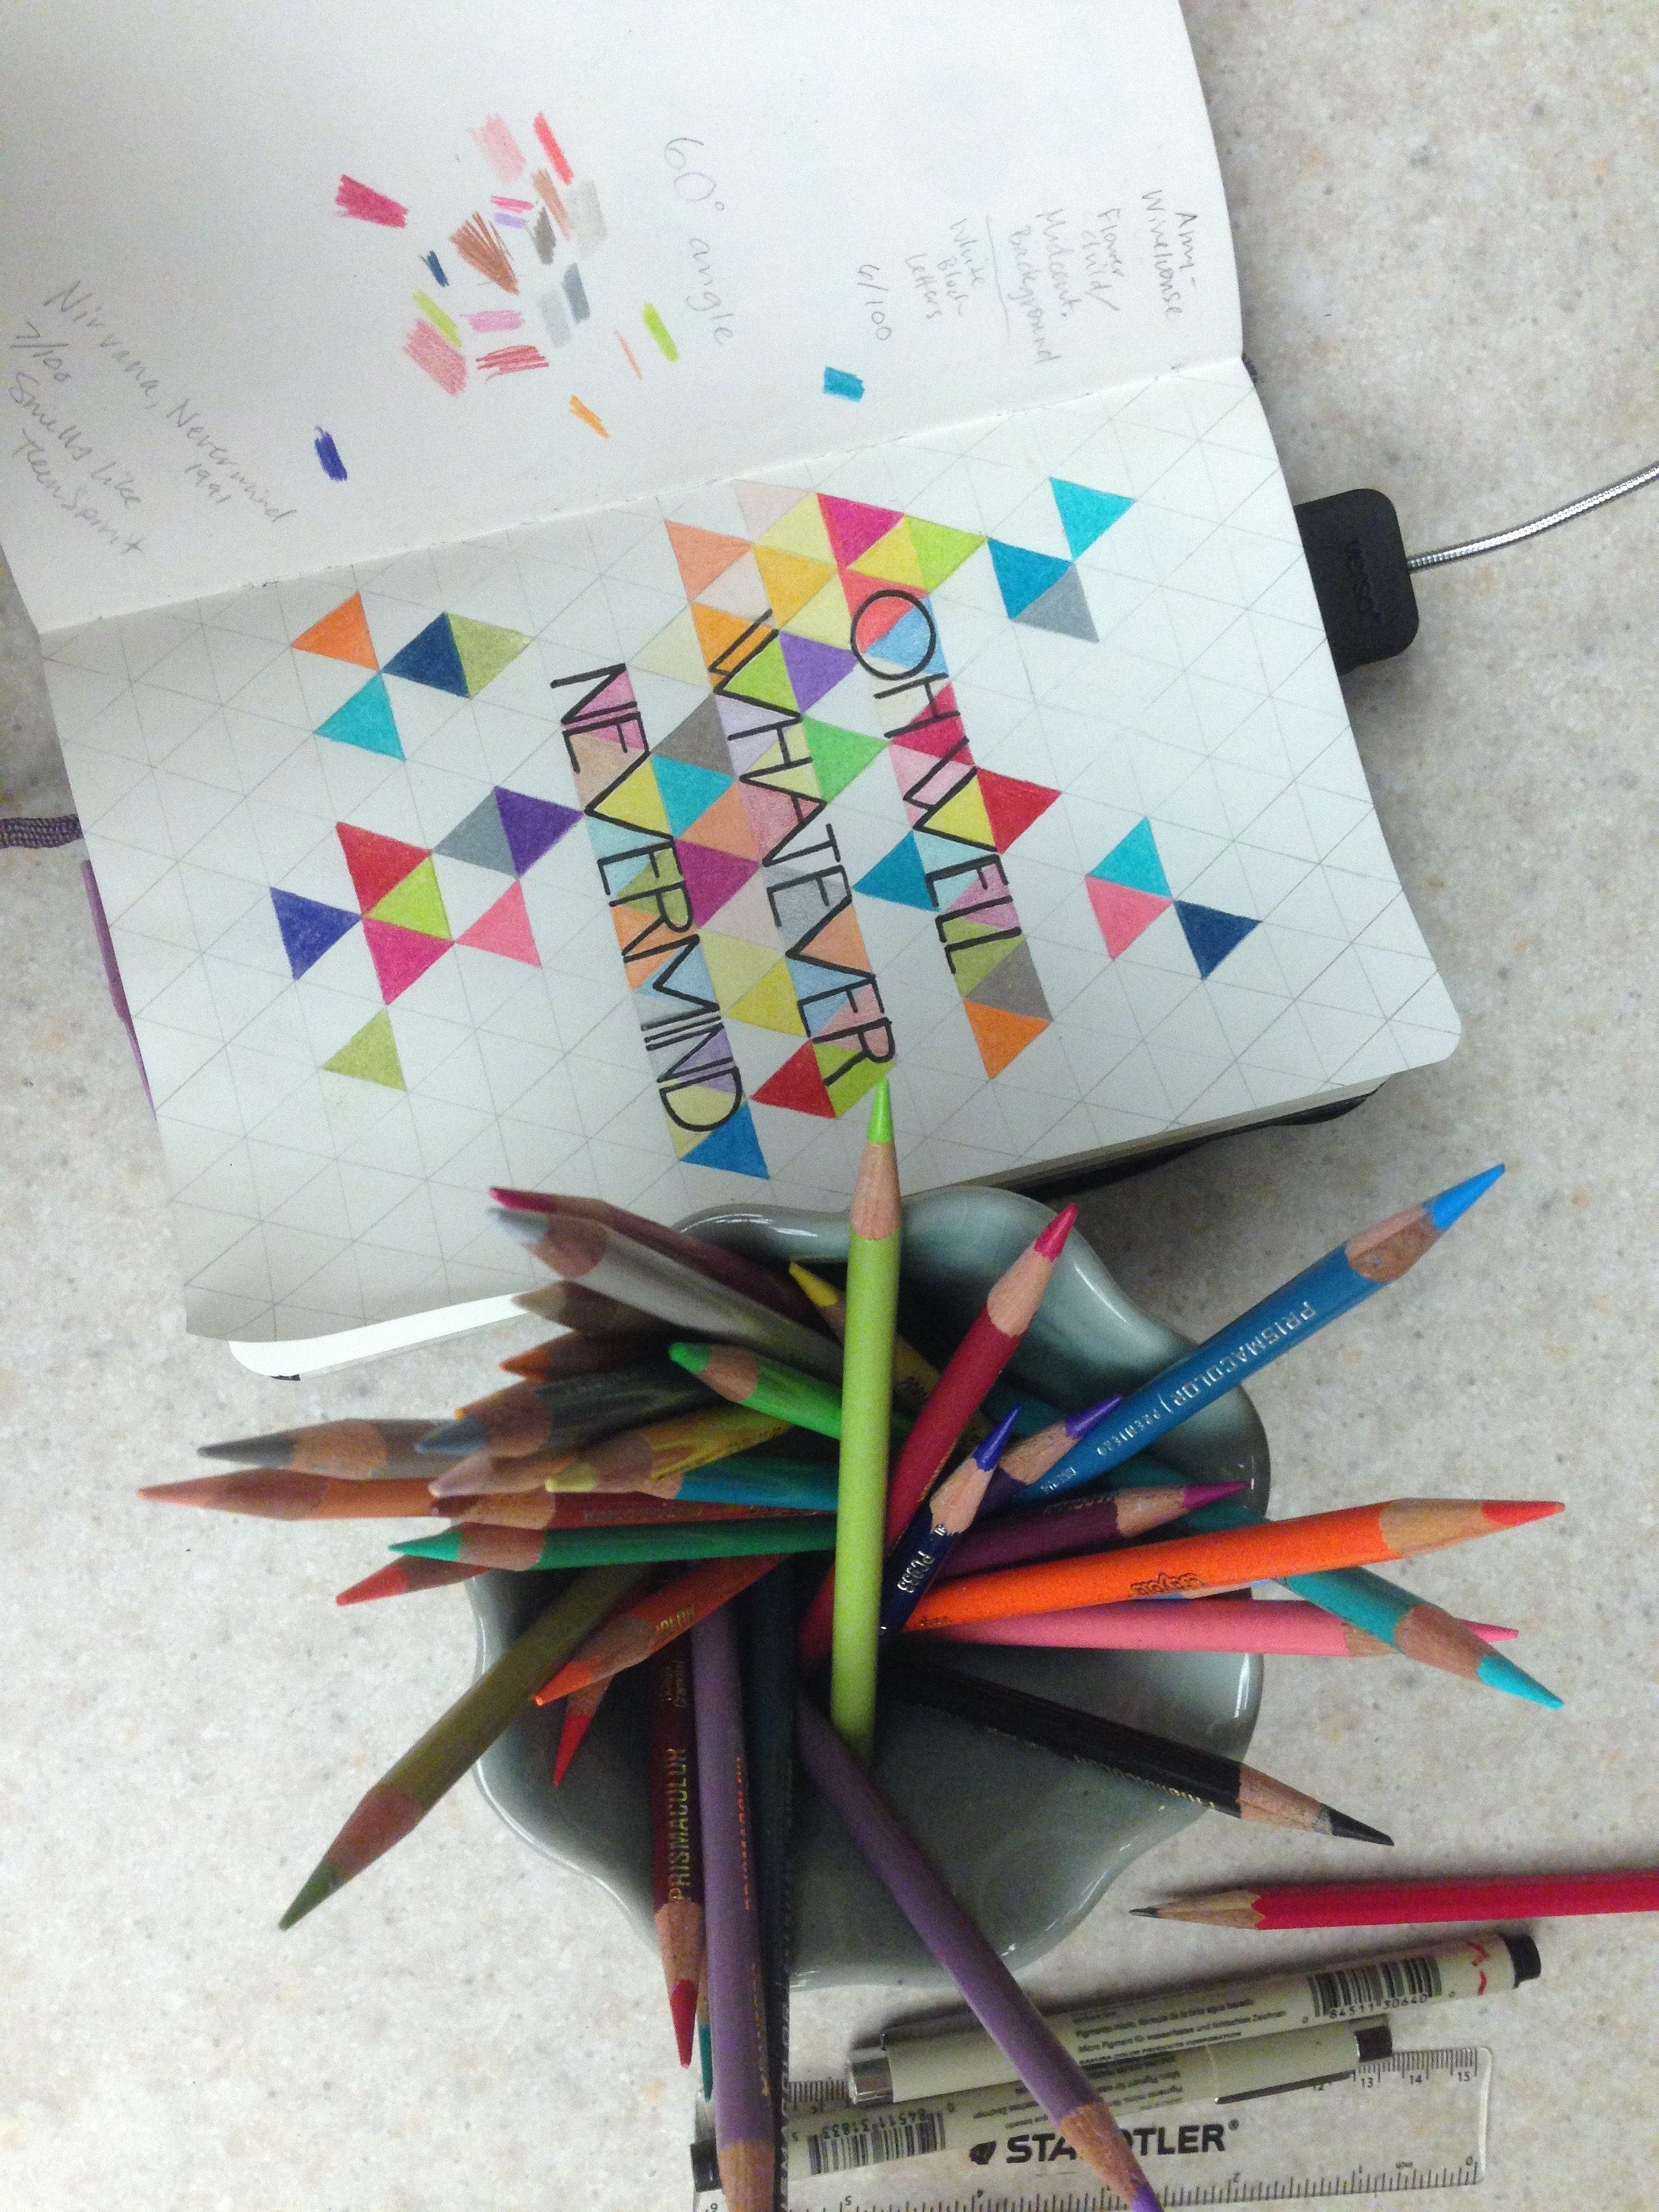 And then the challenge is coloring in all of those little triangles...